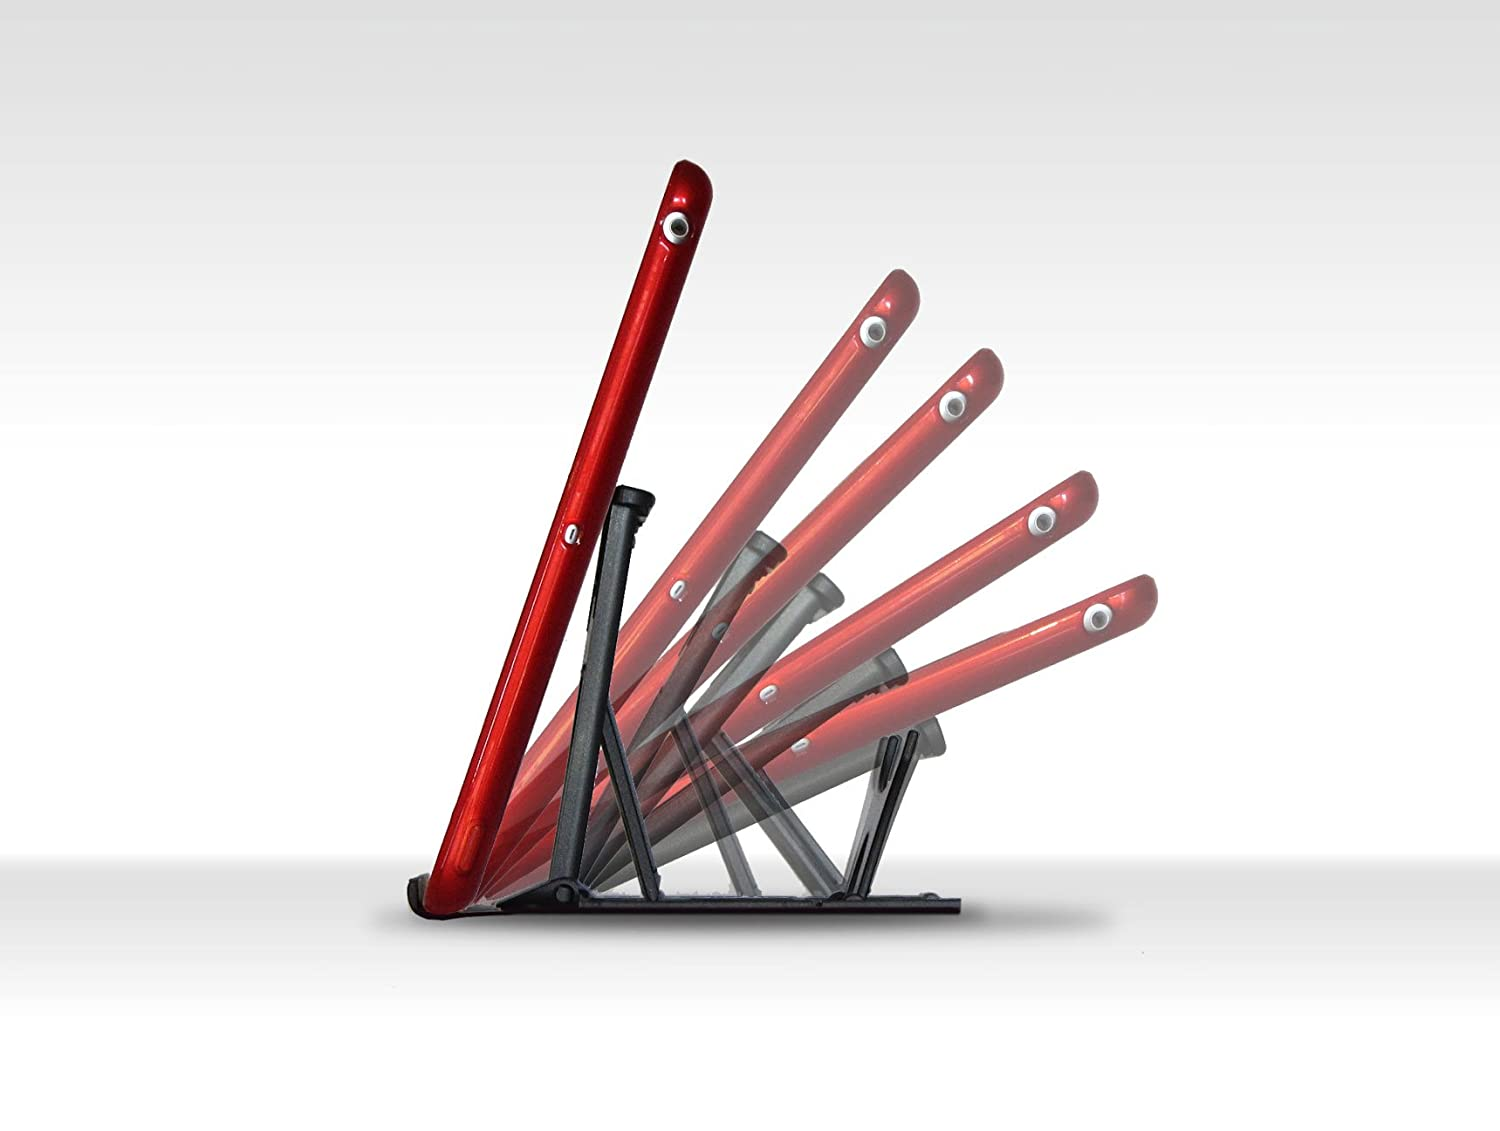 Ultimate Stable Support Compatible With All iPads Office For Desktop Aqua Tablets iPhones Kitchen /& in Bed! Cookery Books /& More Pocket Adjustable iPad Stand